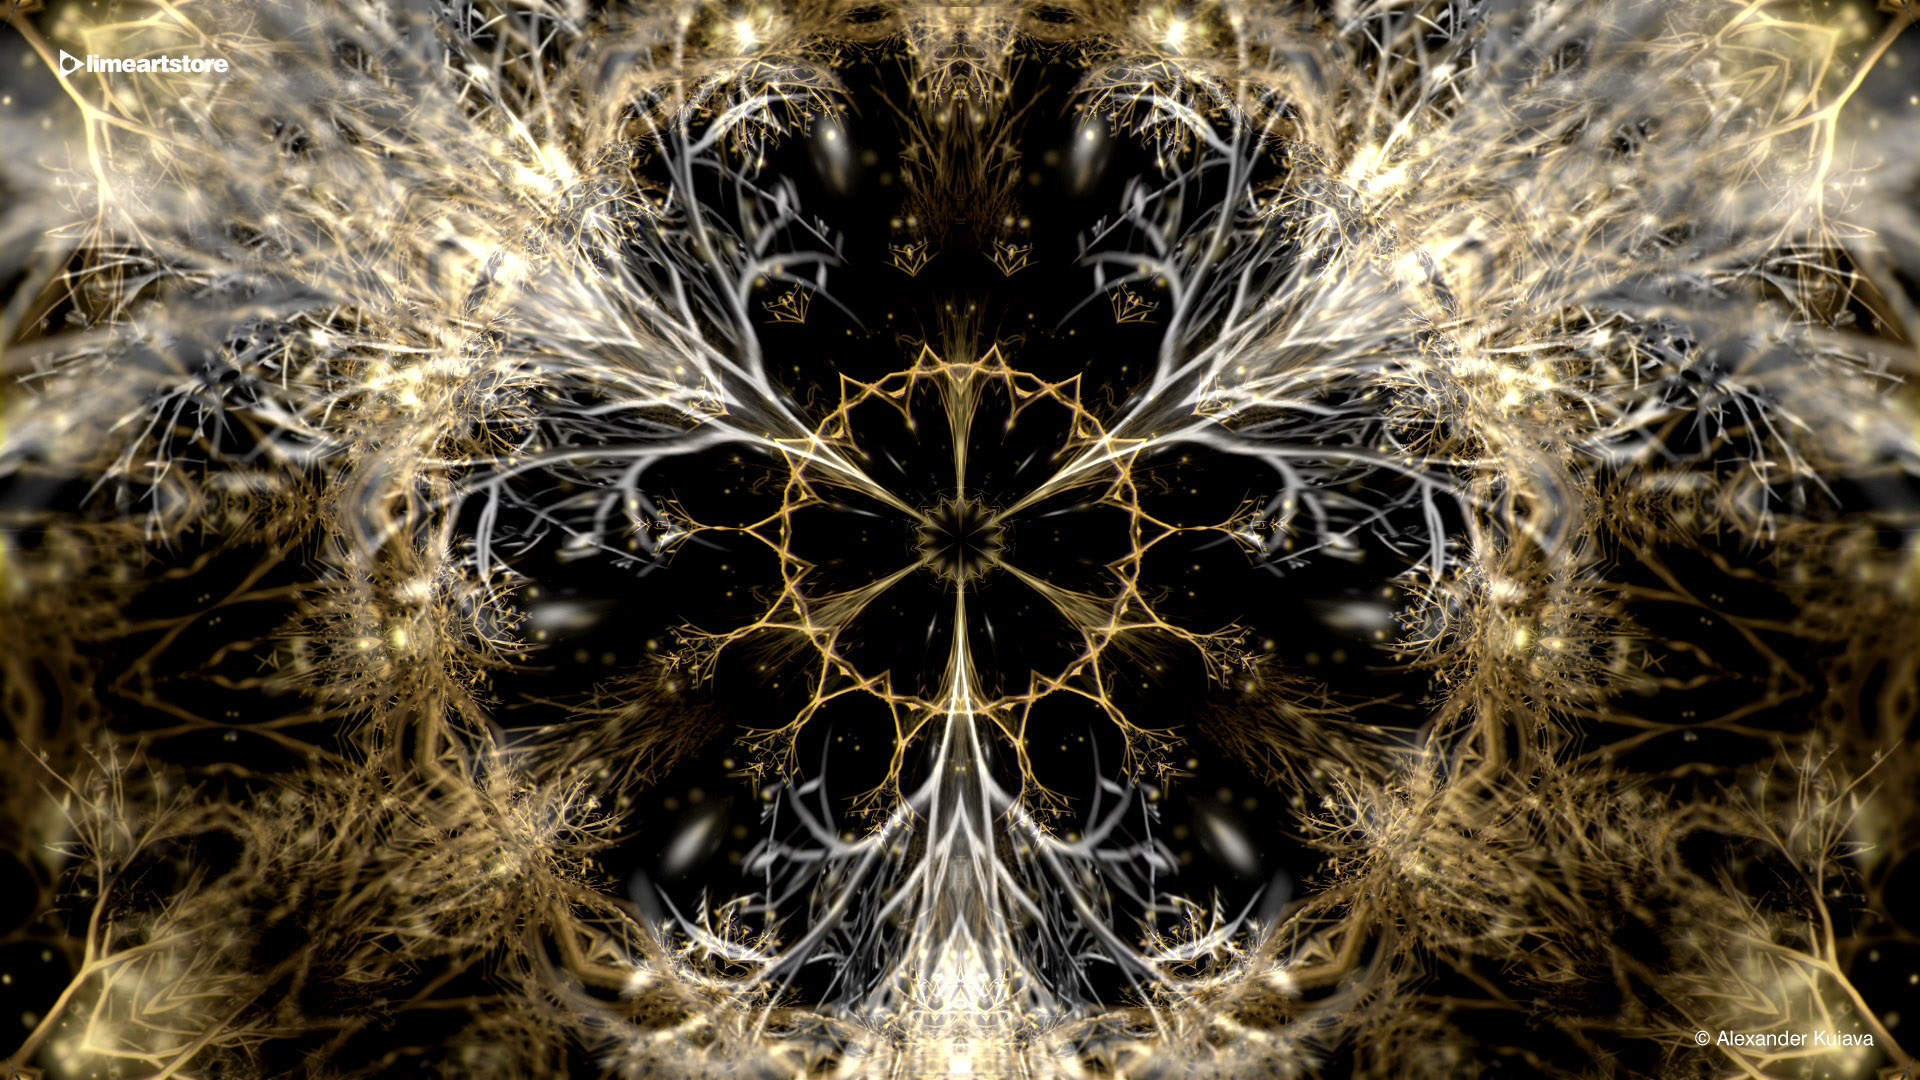 Beauty abstract vj loop motion background gold 60fps 10